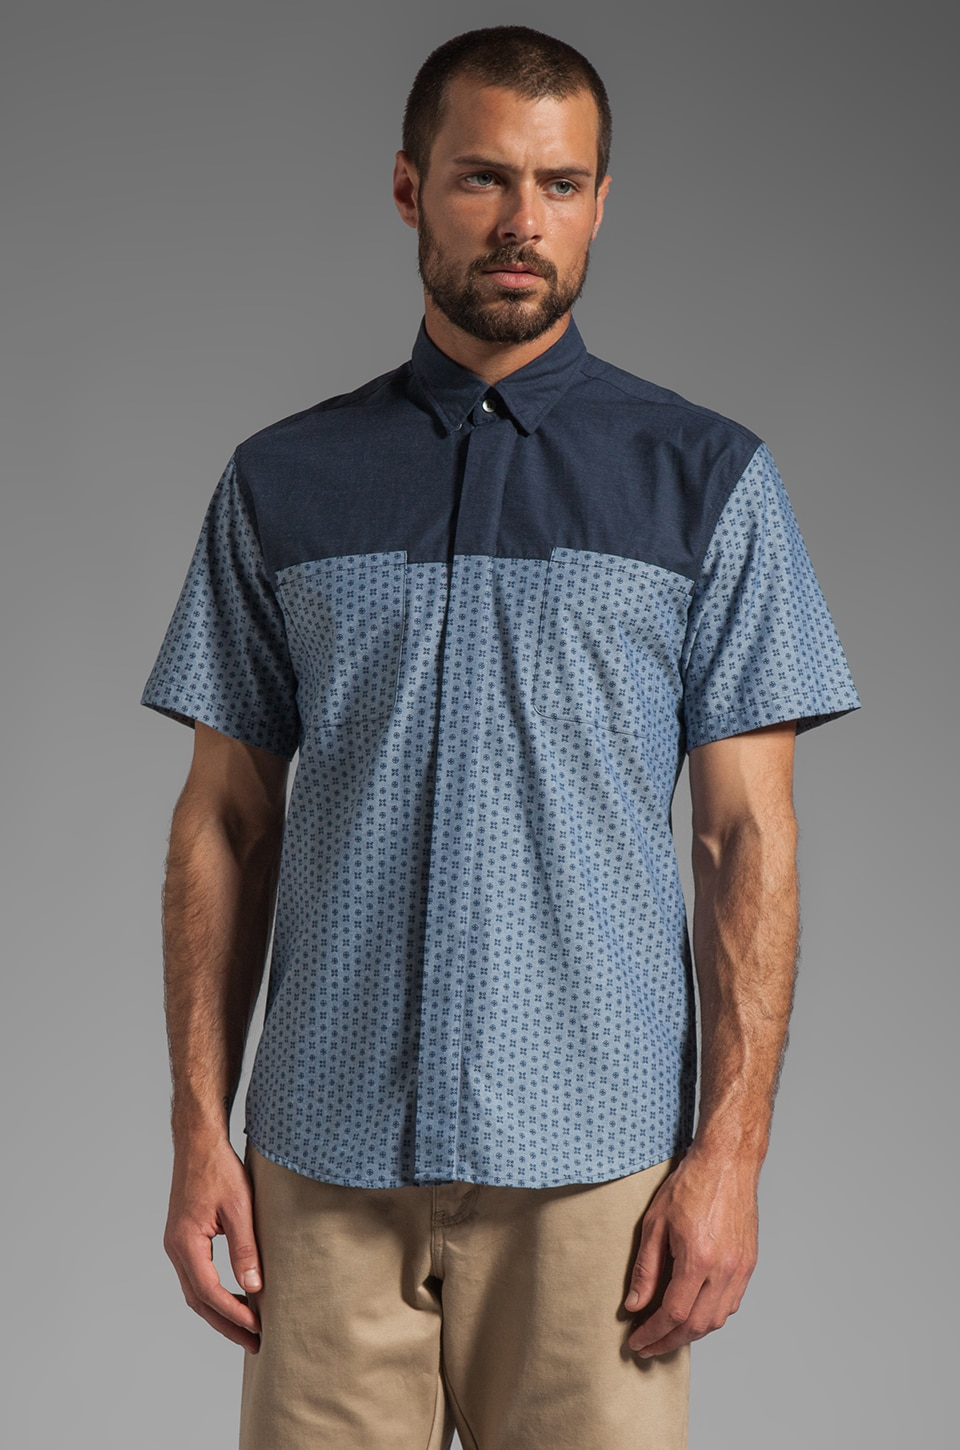 WRK Conductor Short Sleeve Shirt in Indigo